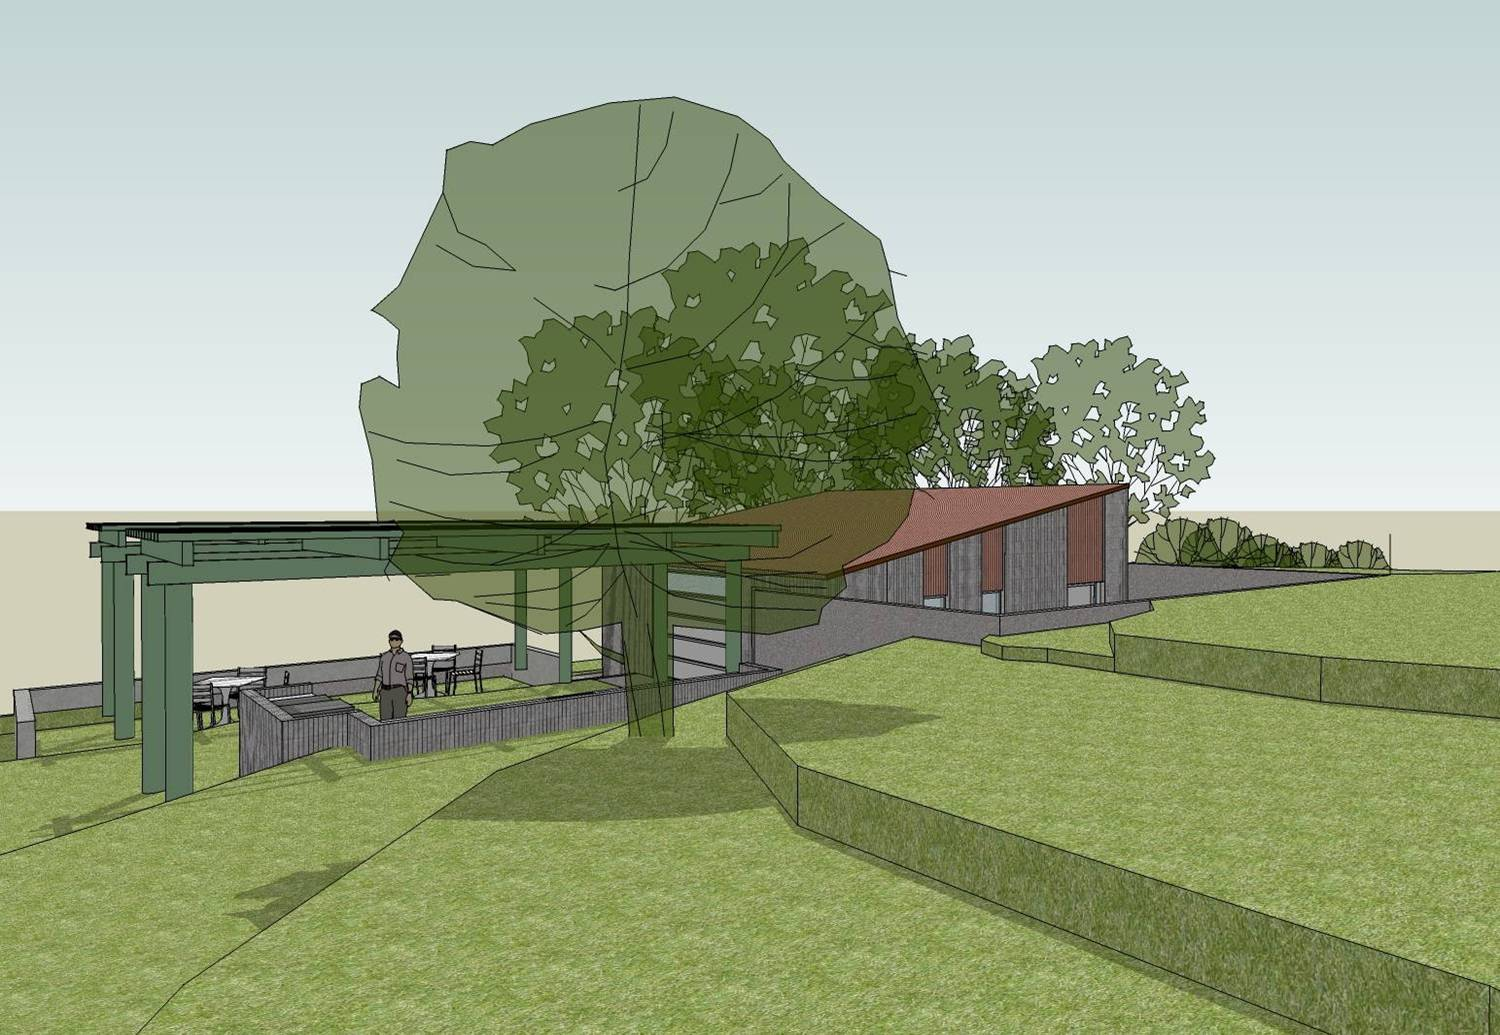 THE TOPA TOPA PATIO is adjacent to the Workshop providing an ideal spot to take advantage of the views plus the practical consideration of storage and electricity provided by the Workshop. (Byron Pinckert conceptual drawing.)